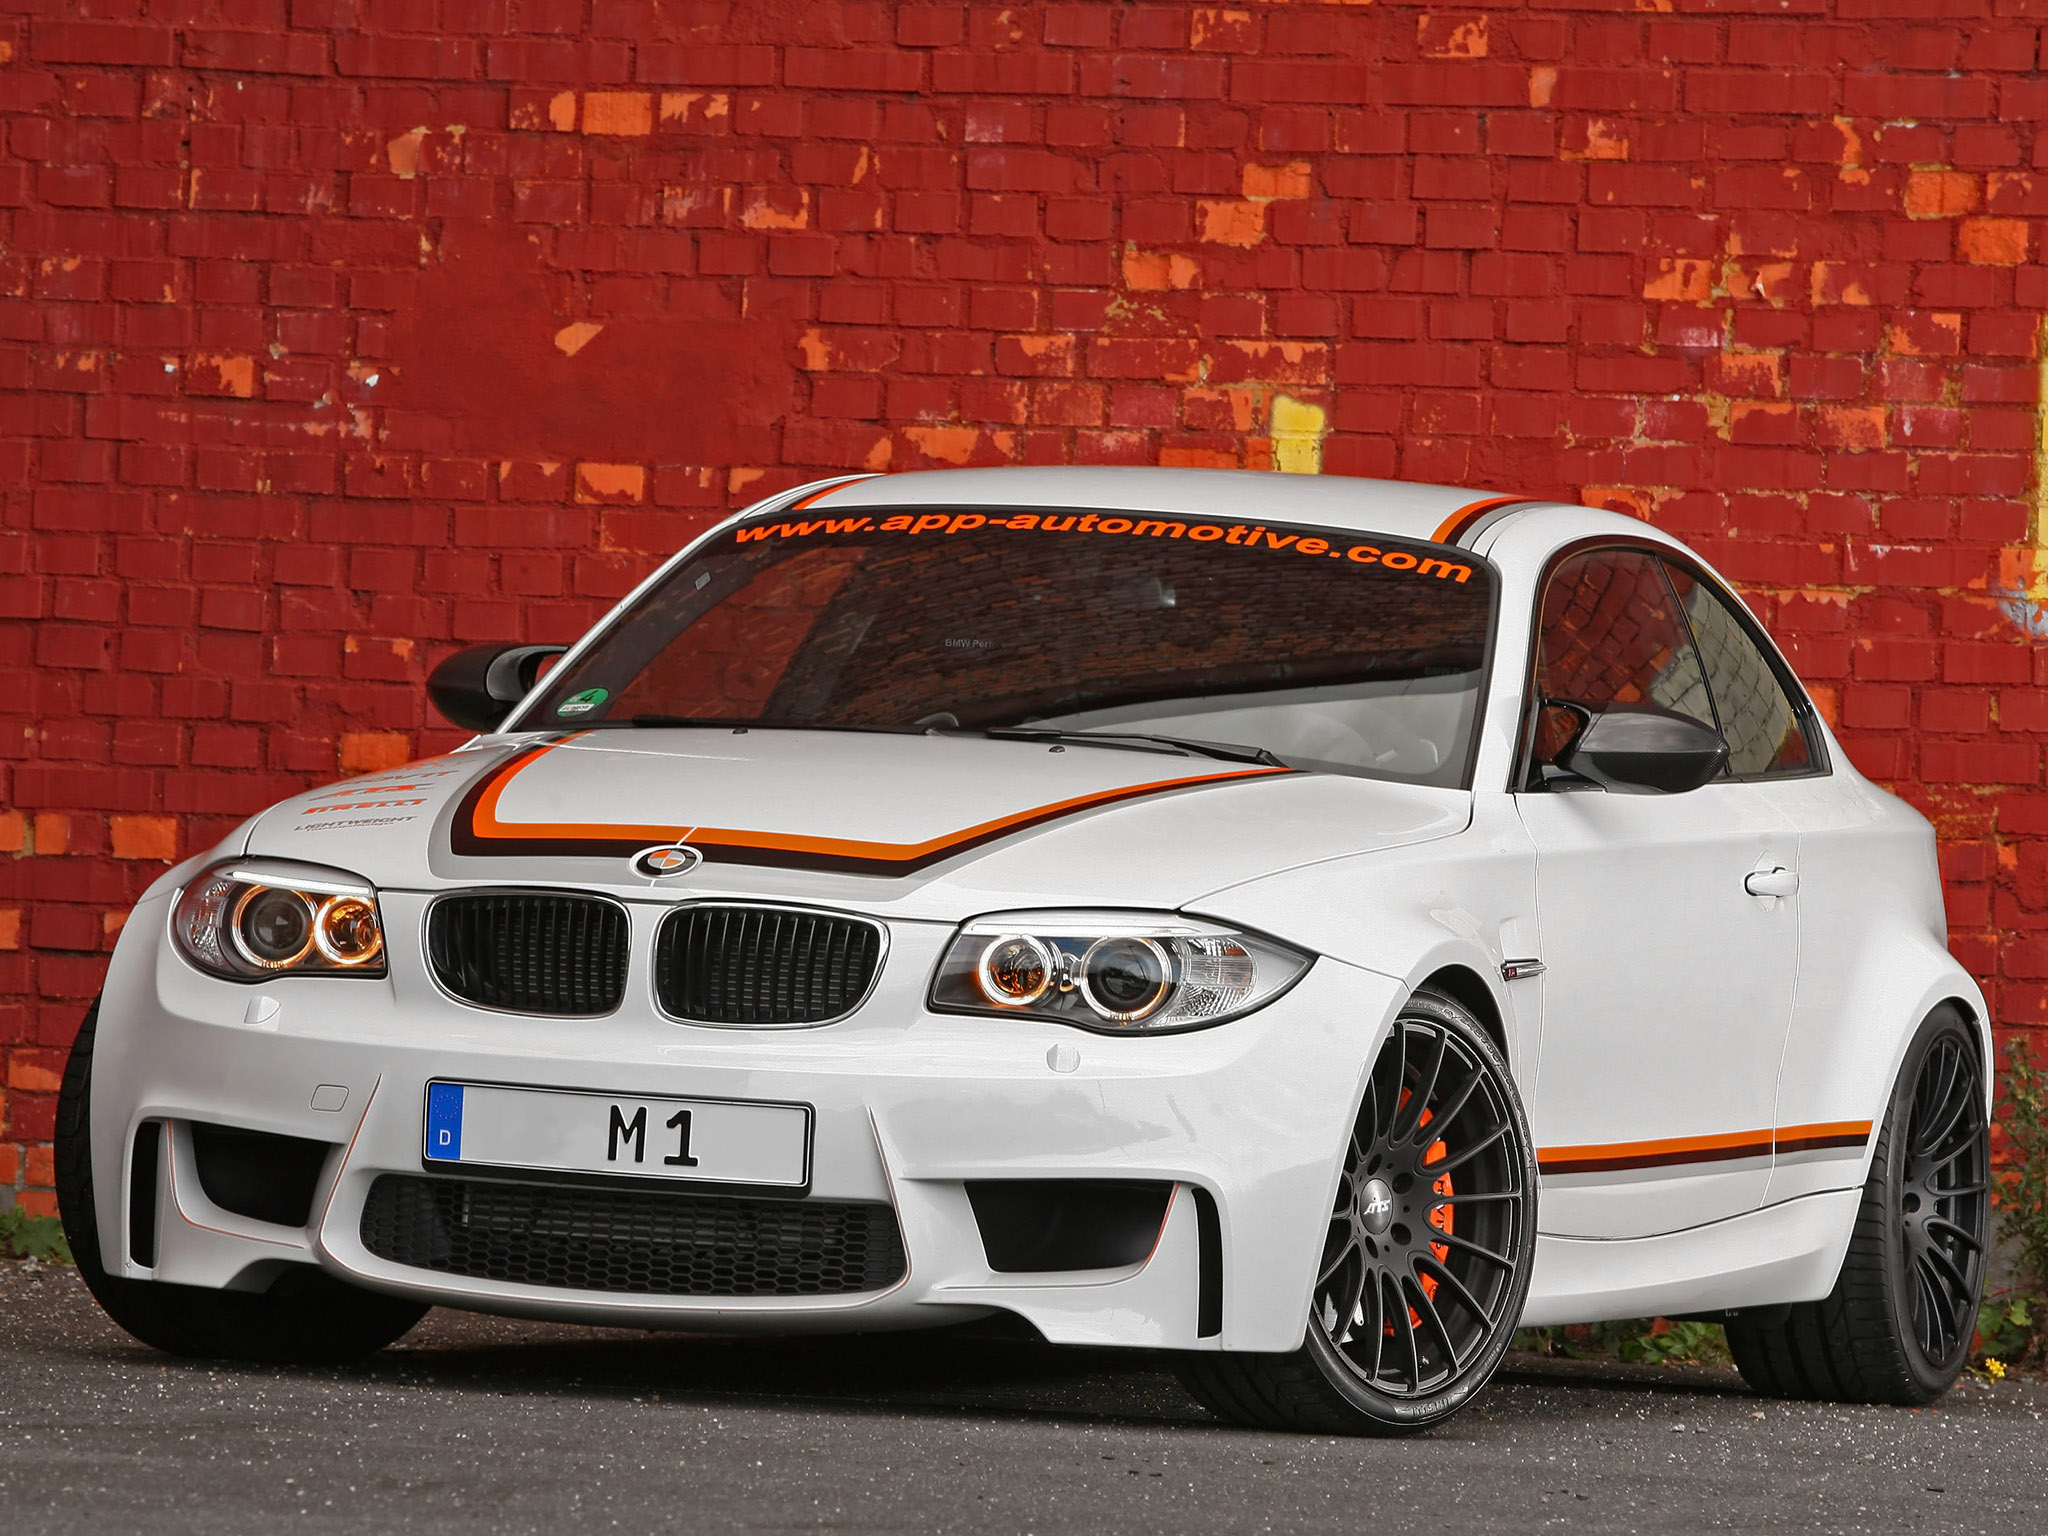 app bmw 1 series m coupe e82 2011 app bmw 1 series m coupe e82 2011 photo 05 car in pictures. Black Bedroom Furniture Sets. Home Design Ideas